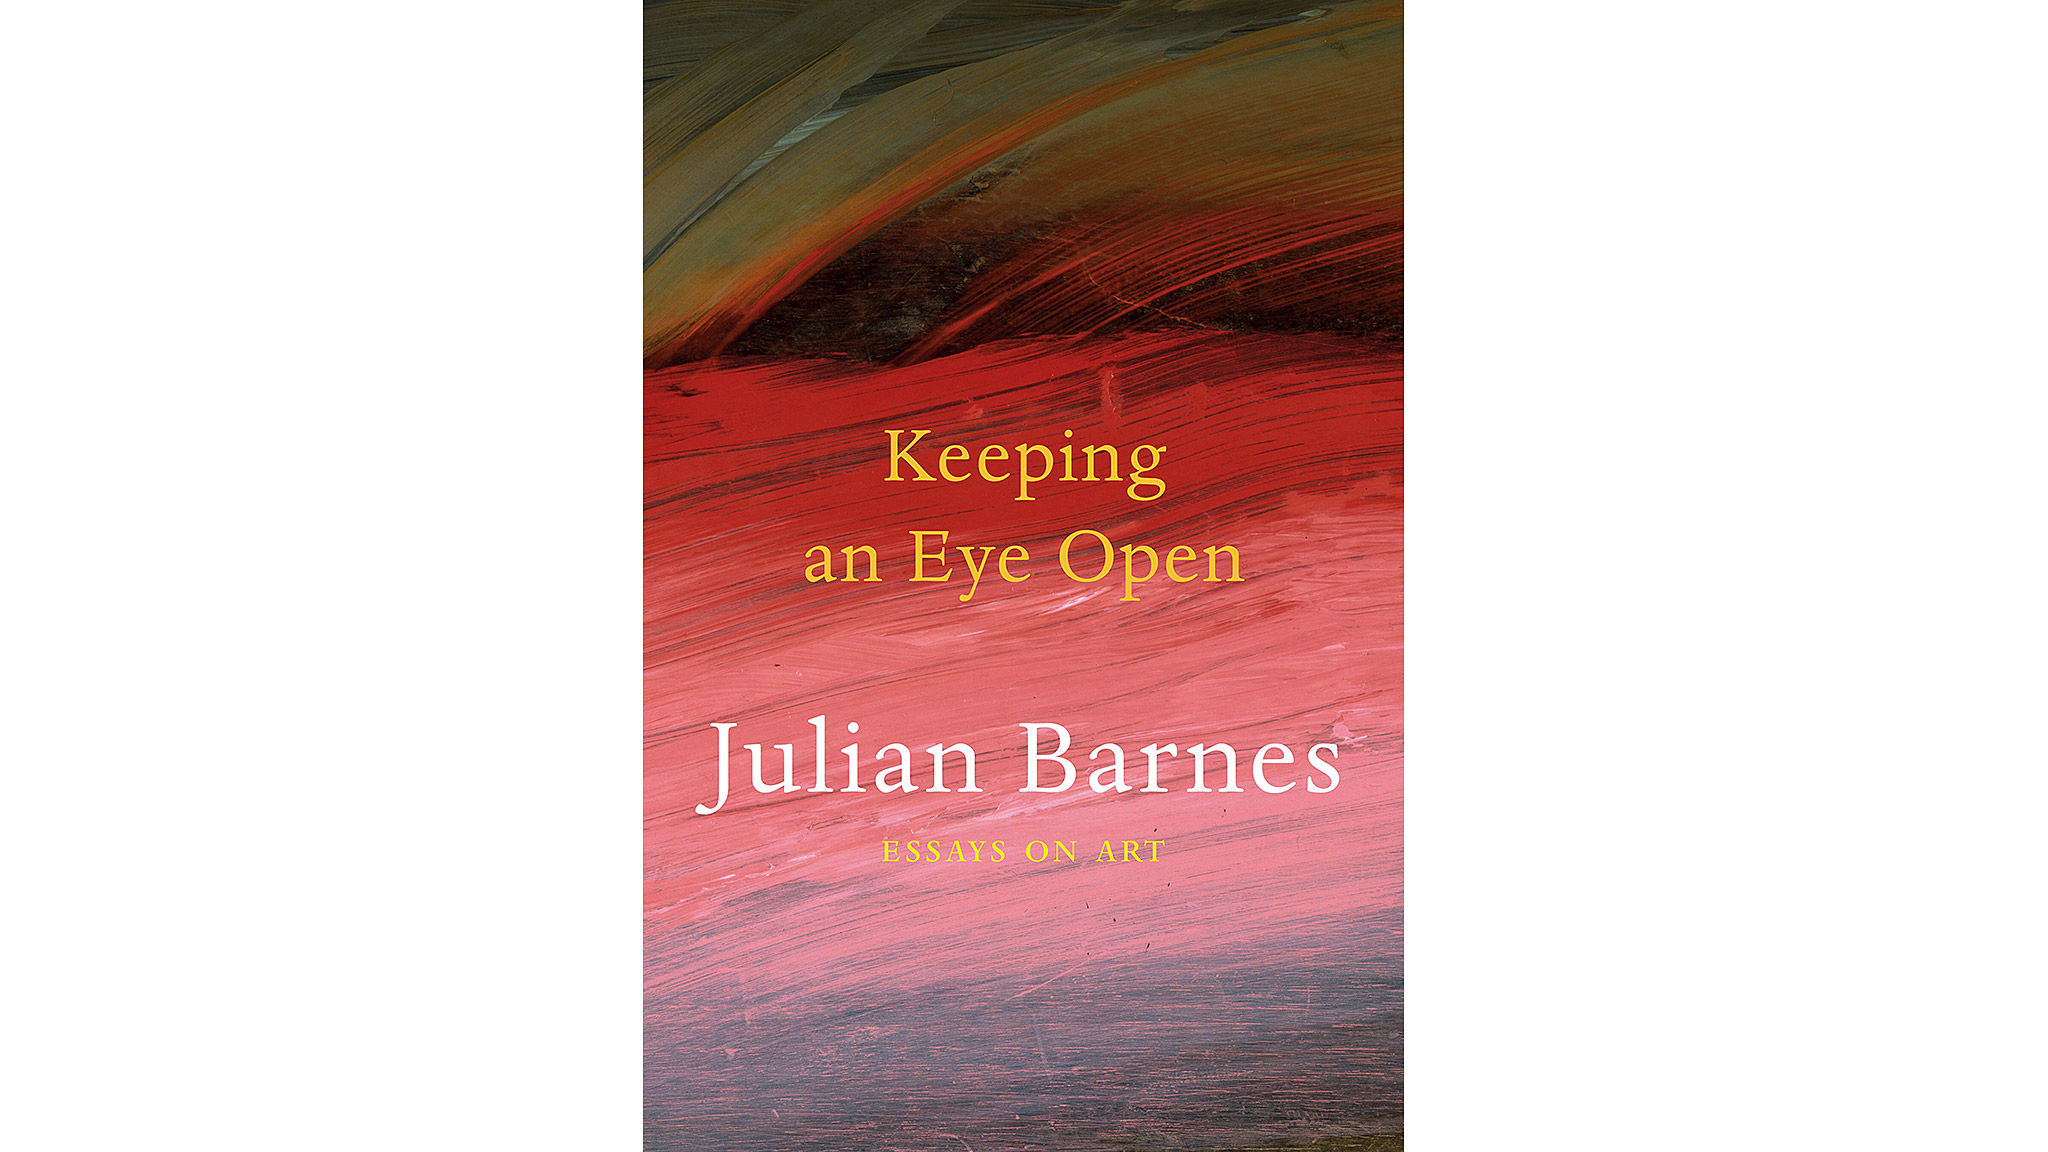 keeping an eye open essays on art by julian barnes keeping an eye open essays on art by julian barnes